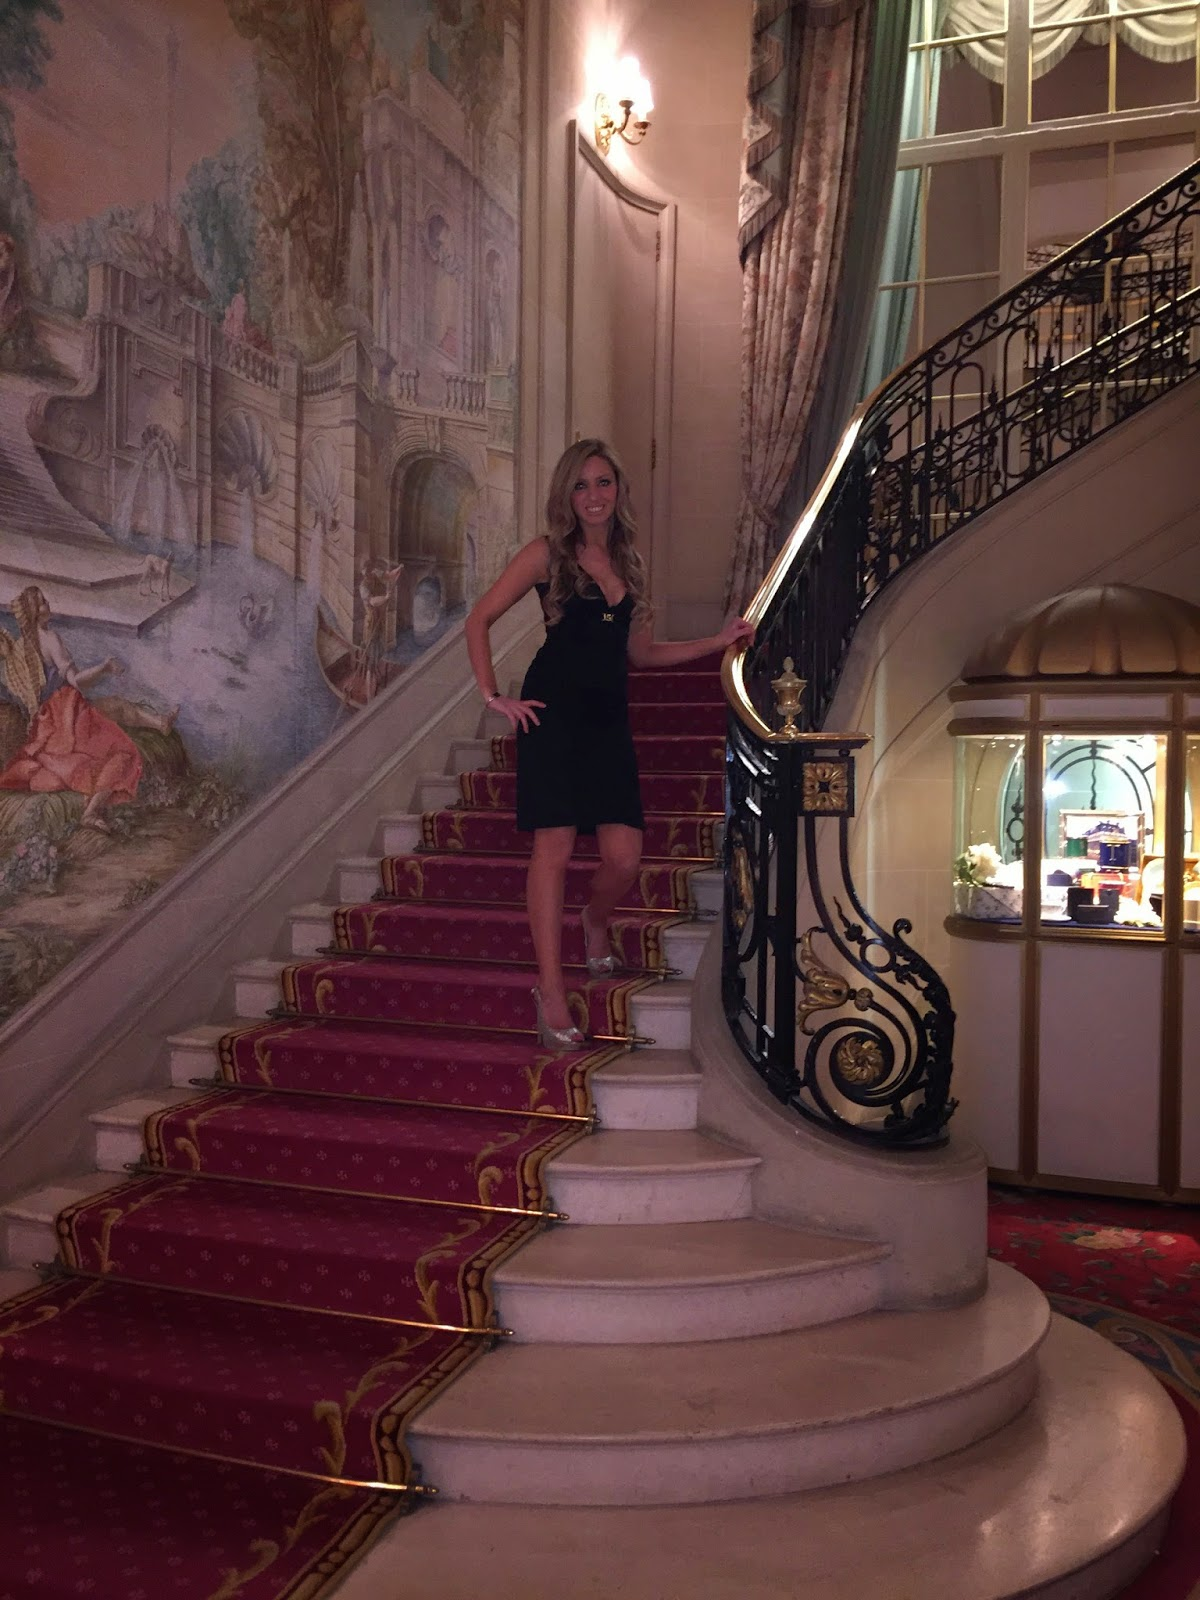 A Must Do in London: Afternoon Tea at The Ritz